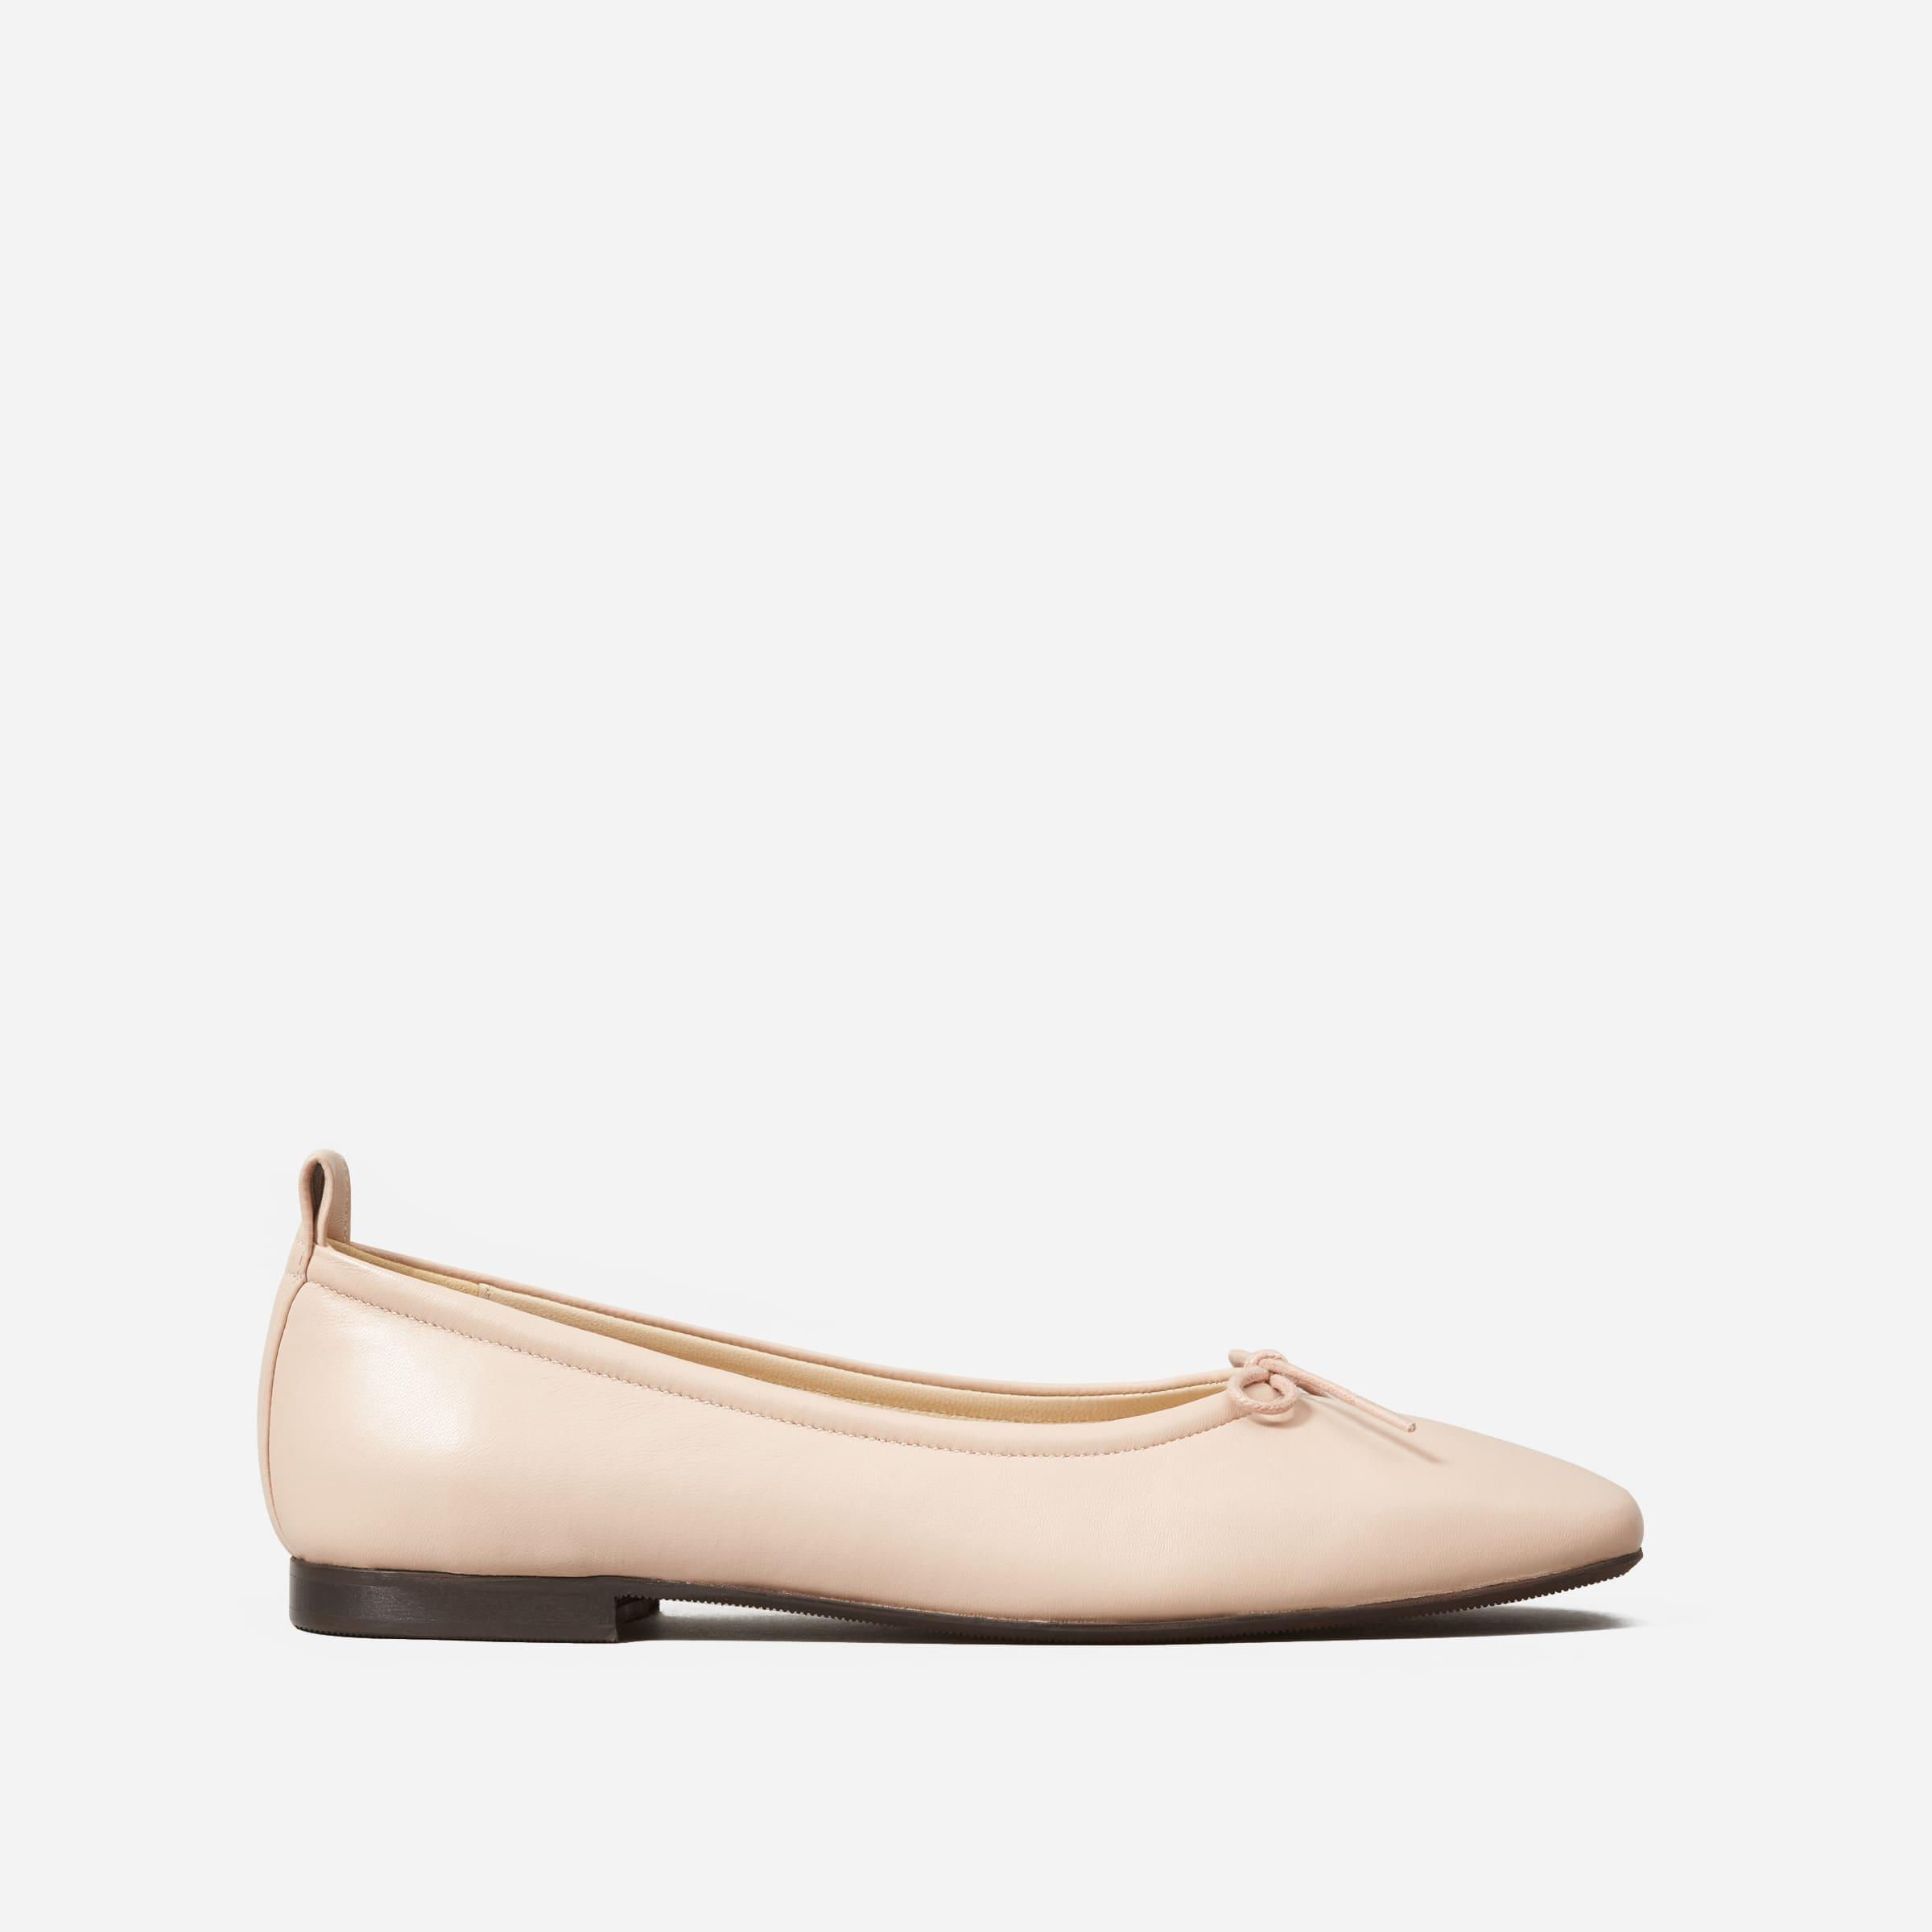 The Day Ballet Flat